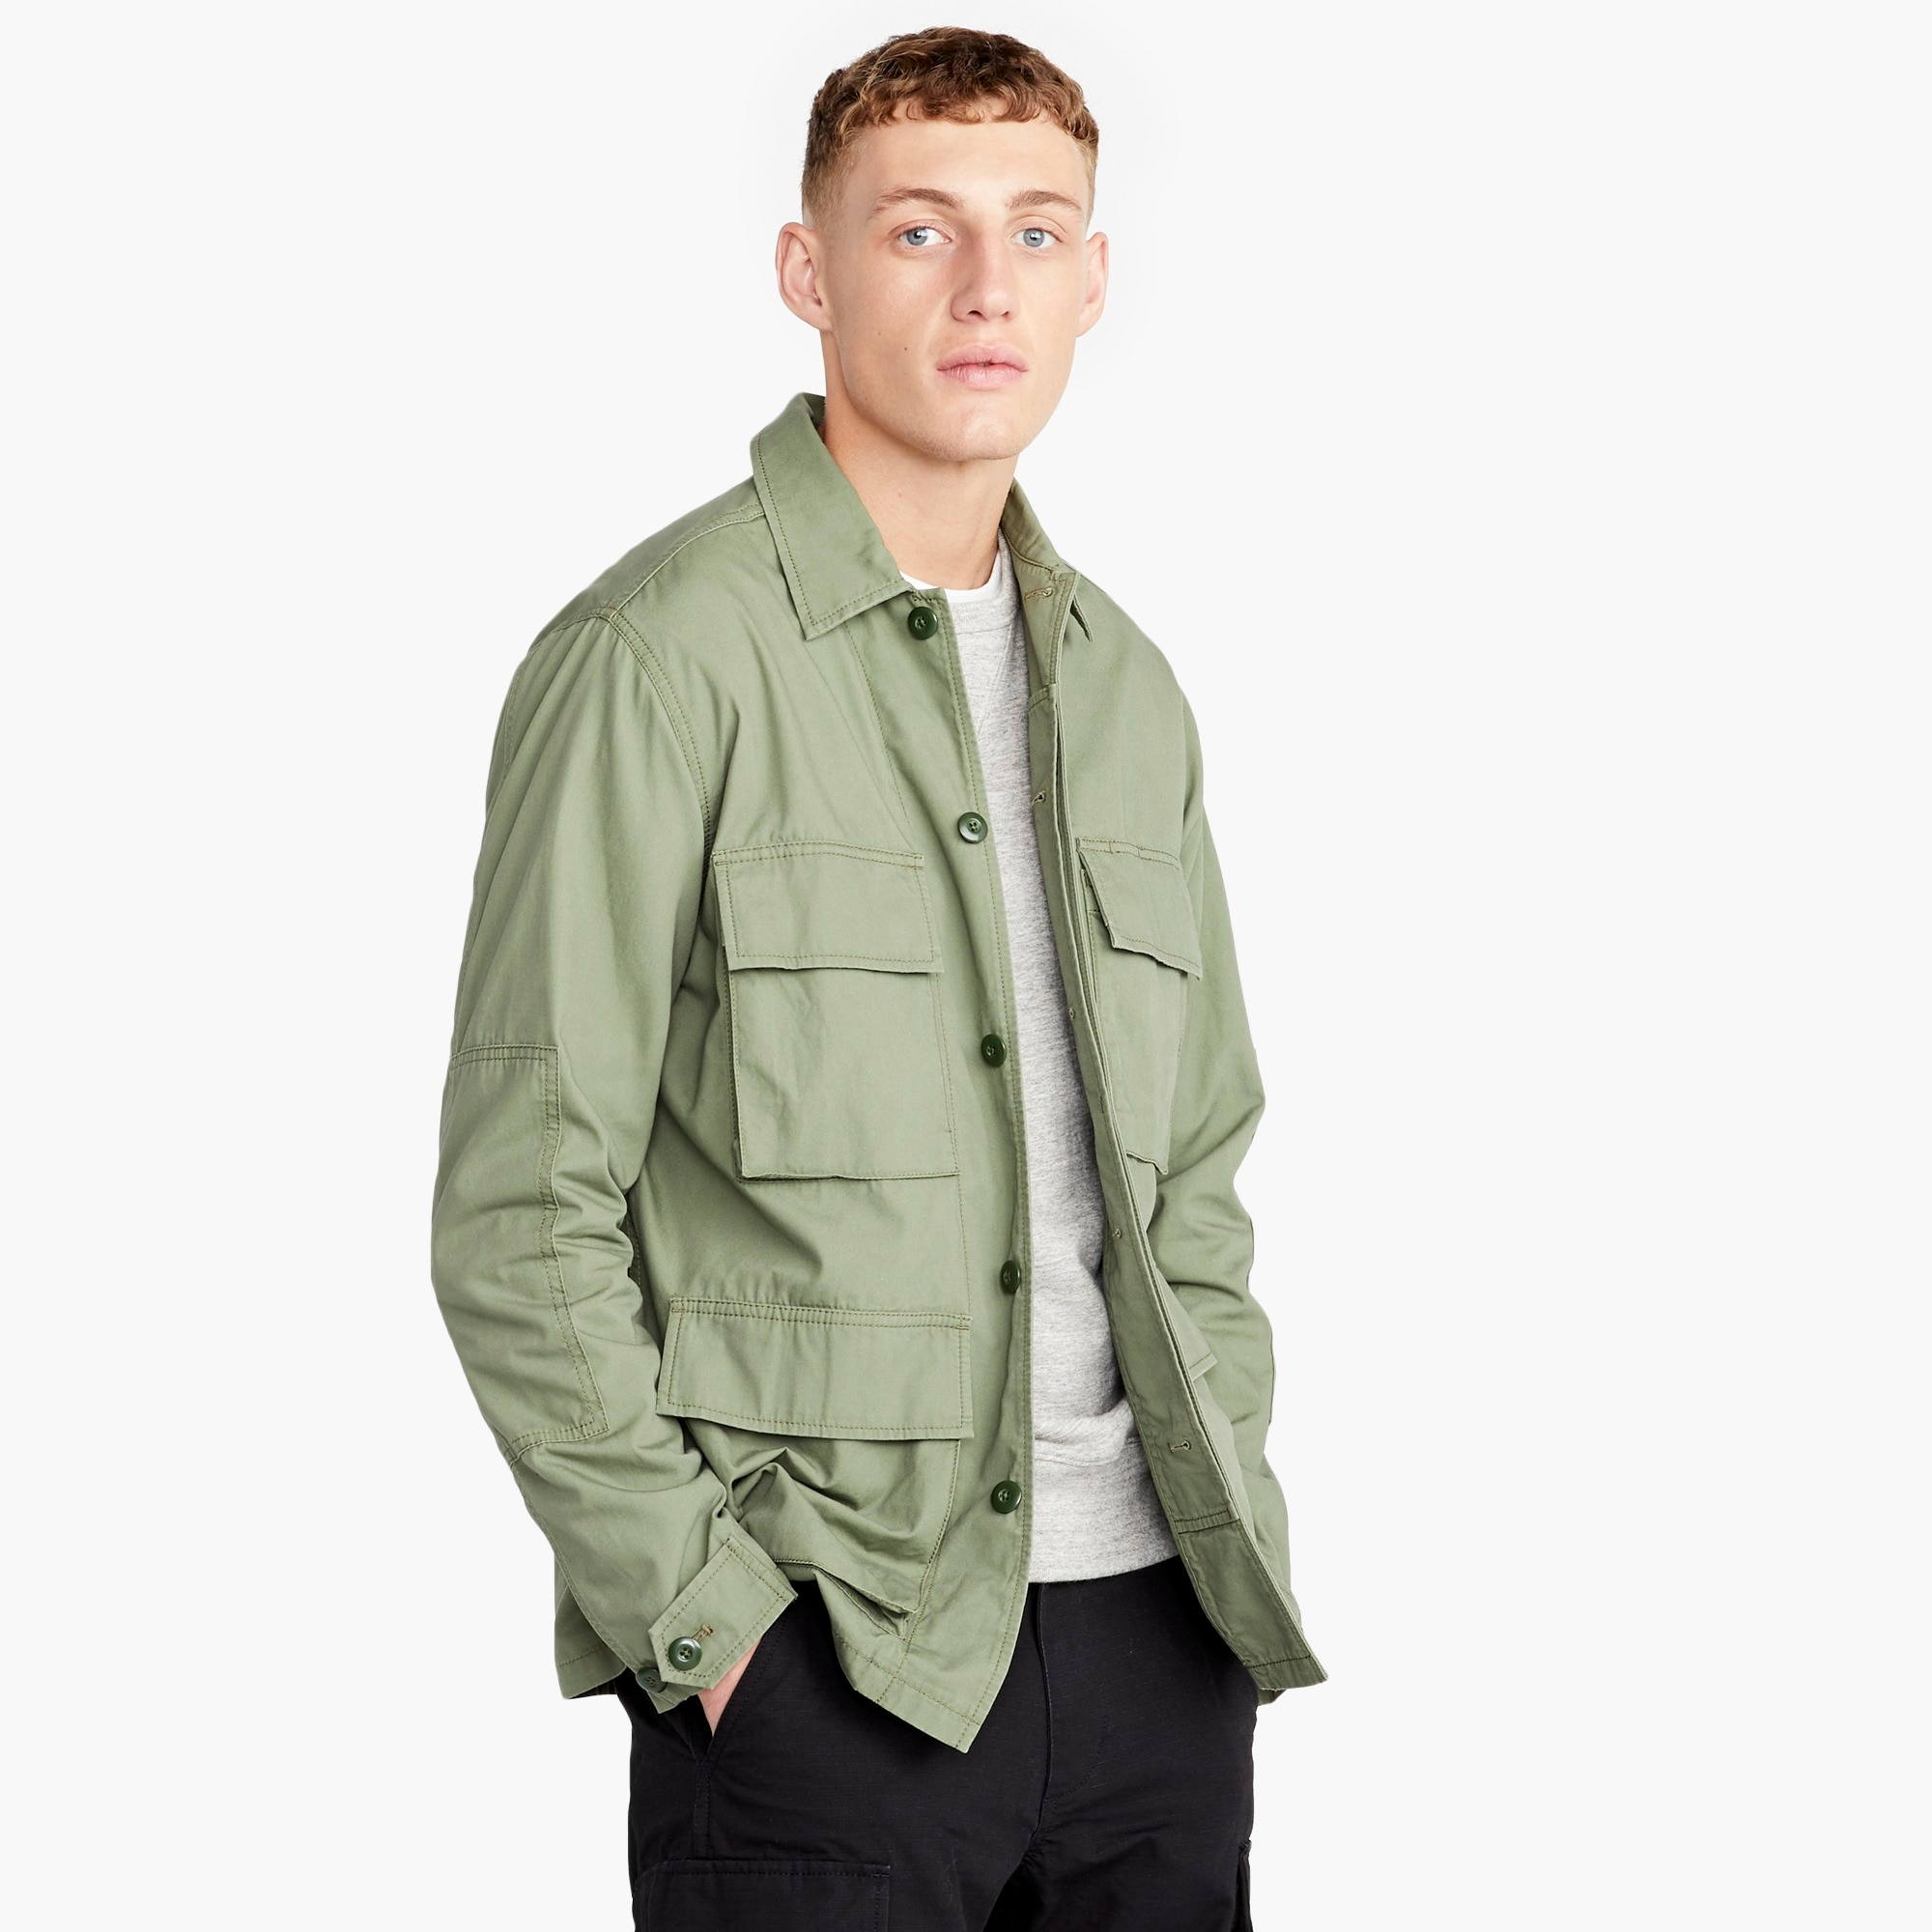 Image 3 for J.Crew Mercantile field jacket